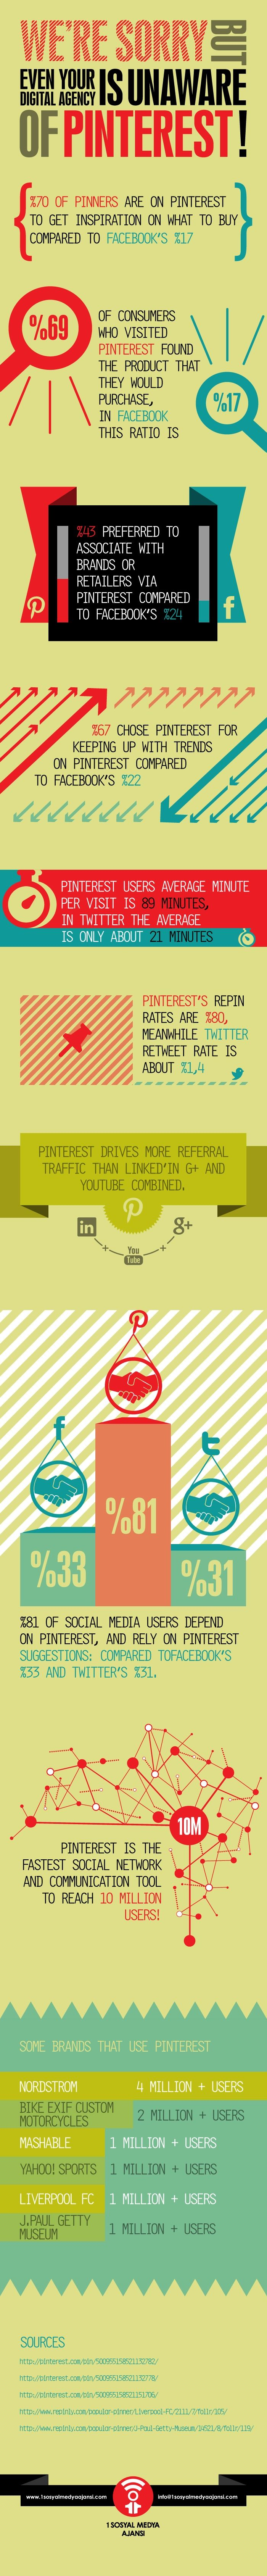 Most digital agencies are unaware of the power and potential of #Pinterest [Infographic]